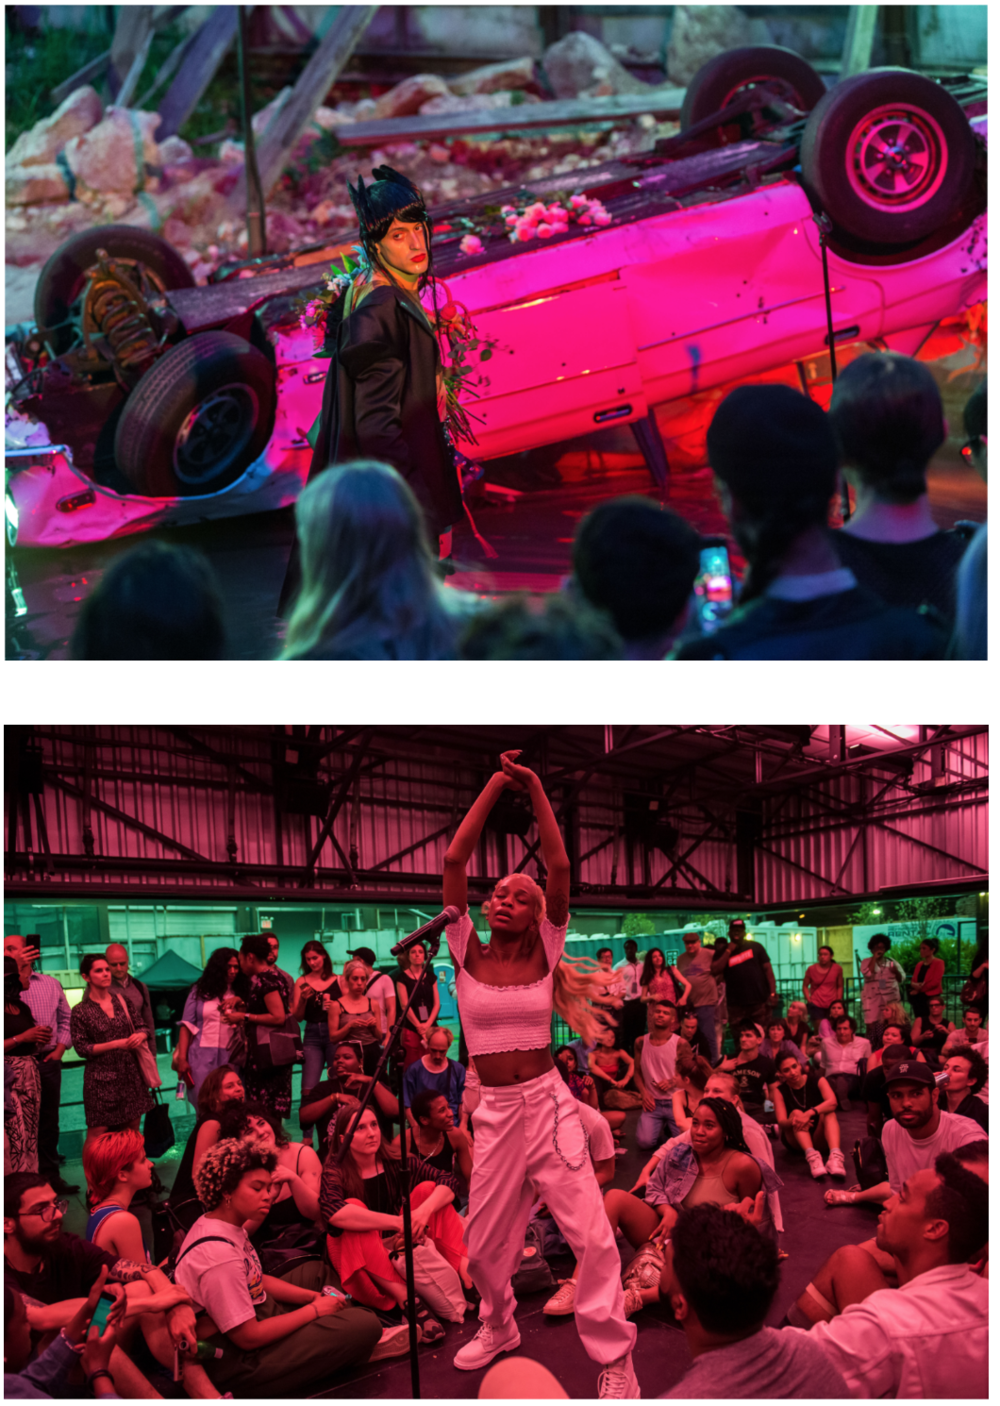 May 2018,  A Prelude to The Shed , The Shed's first public program, in a temporary structure at 10th Avenue and 31st Street in Manhattan, one block from its permanent home opening in spring 2019. Above: ARCA. © Kate Glicksberg/The Shed. Photo: Kate Glicksberg; Below: ABRA. Image © Stephanie Berger/The Shed. Photo: Stephanie Berger. Photos borrowed from theShed.org as reference only.